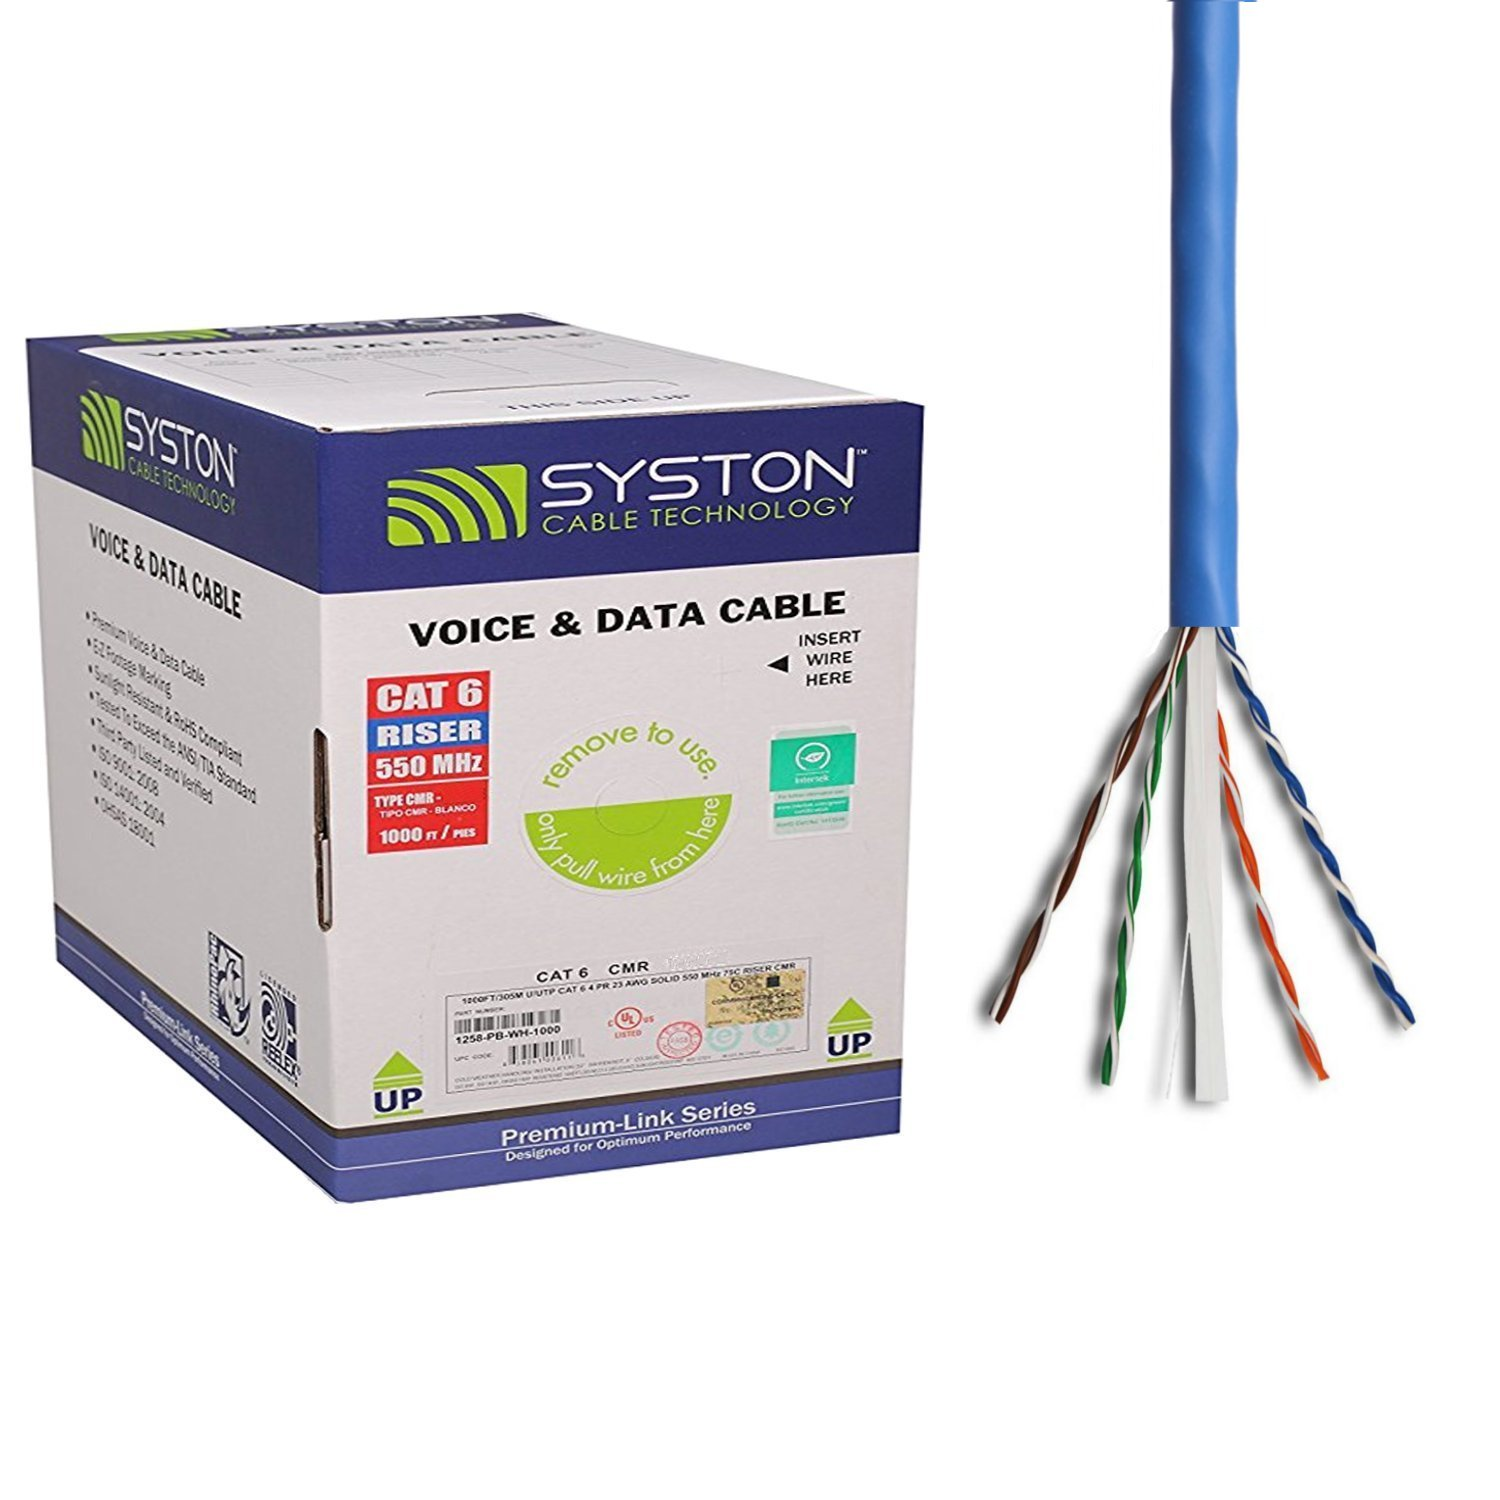 Cat6 Bulk Cable 500ft Pure Copper, Outdoor/Indoor Heat Resistant, Solid, 550Mhz, 23AWG, Riser Rated CMR, Blue by Syston Cable Technology